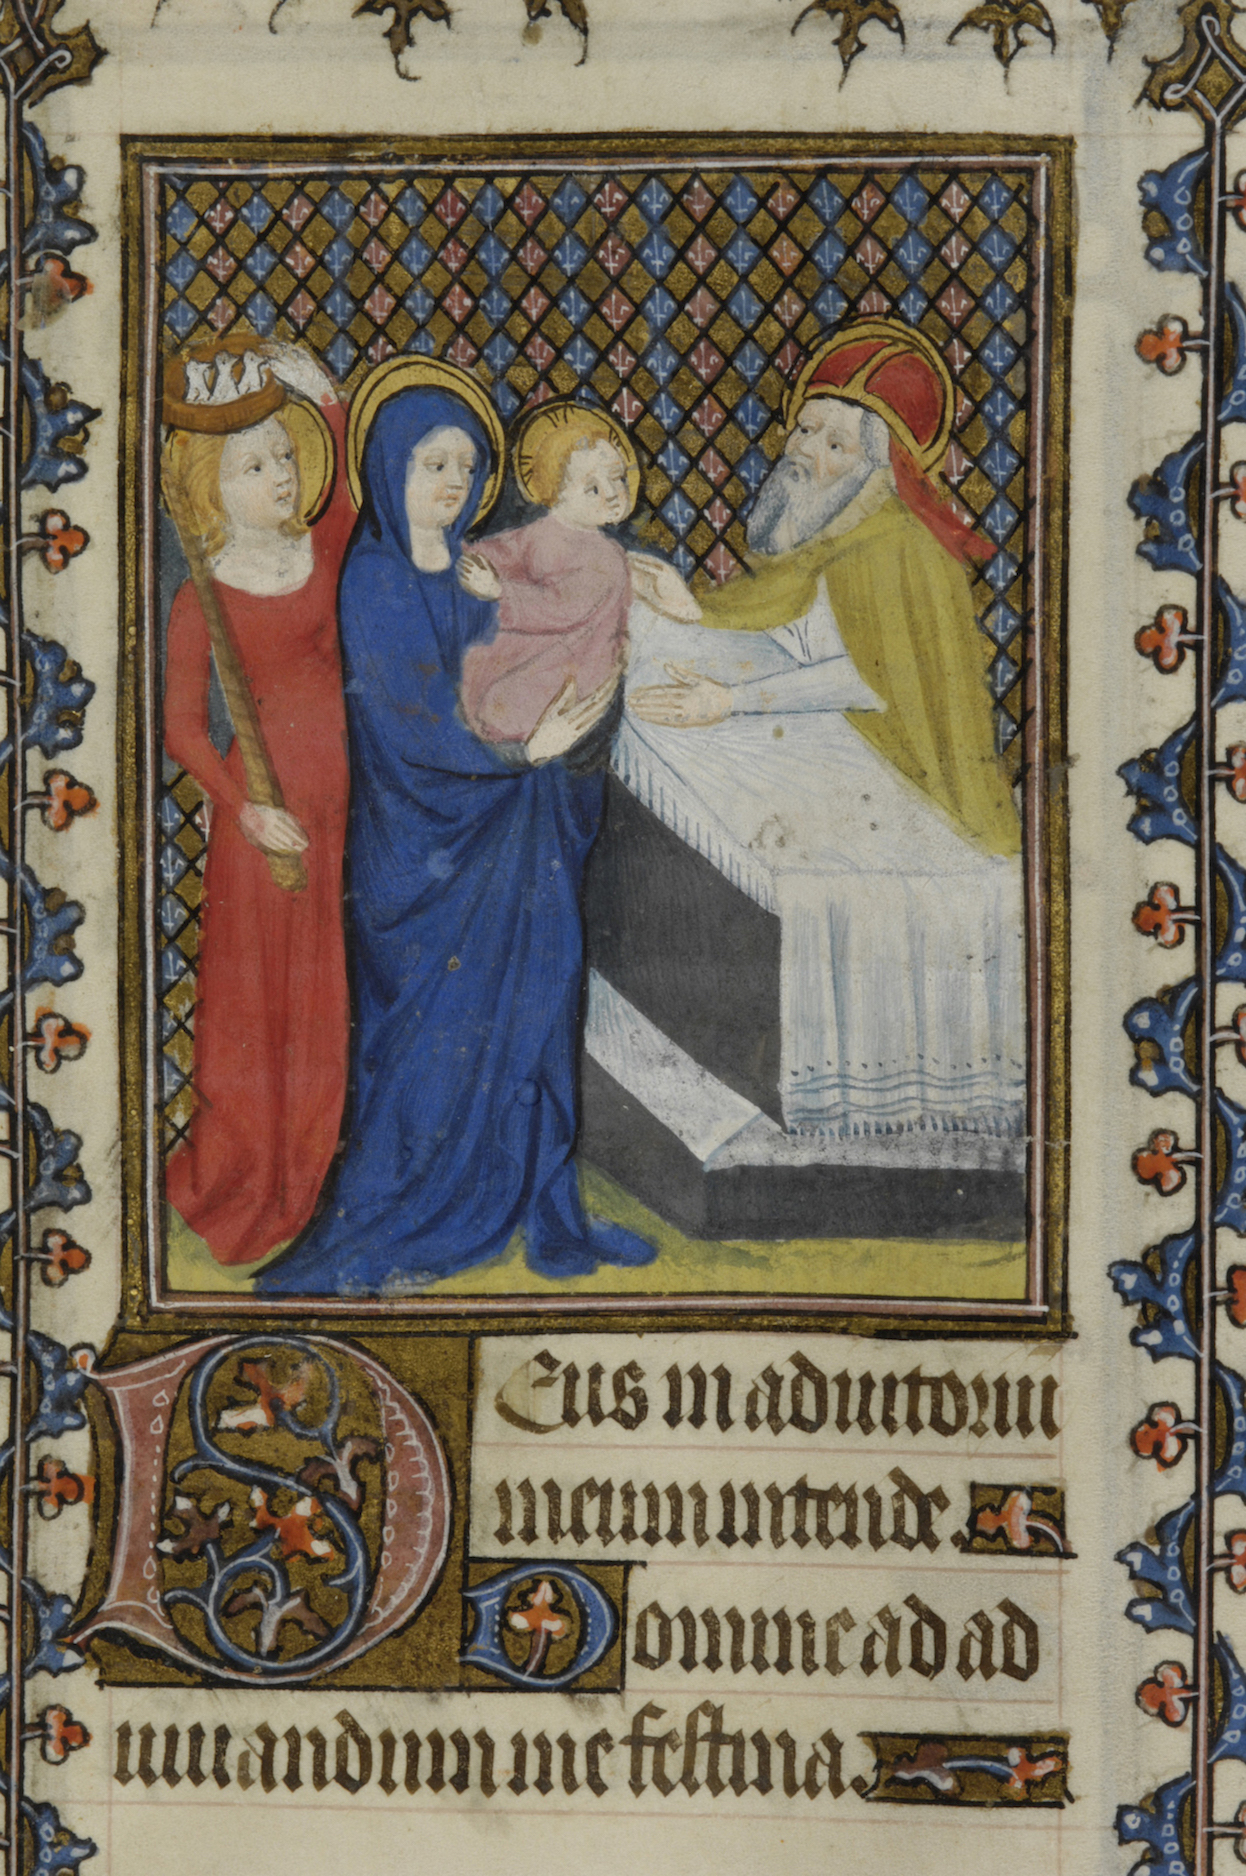 Figure 5. Prophetess Anna balancing basket of three doves on her head and holding candle at the Presentation of Christ. Book of Hours (ca. 1400). New York, Morgan Library S.9, fol. 79r.